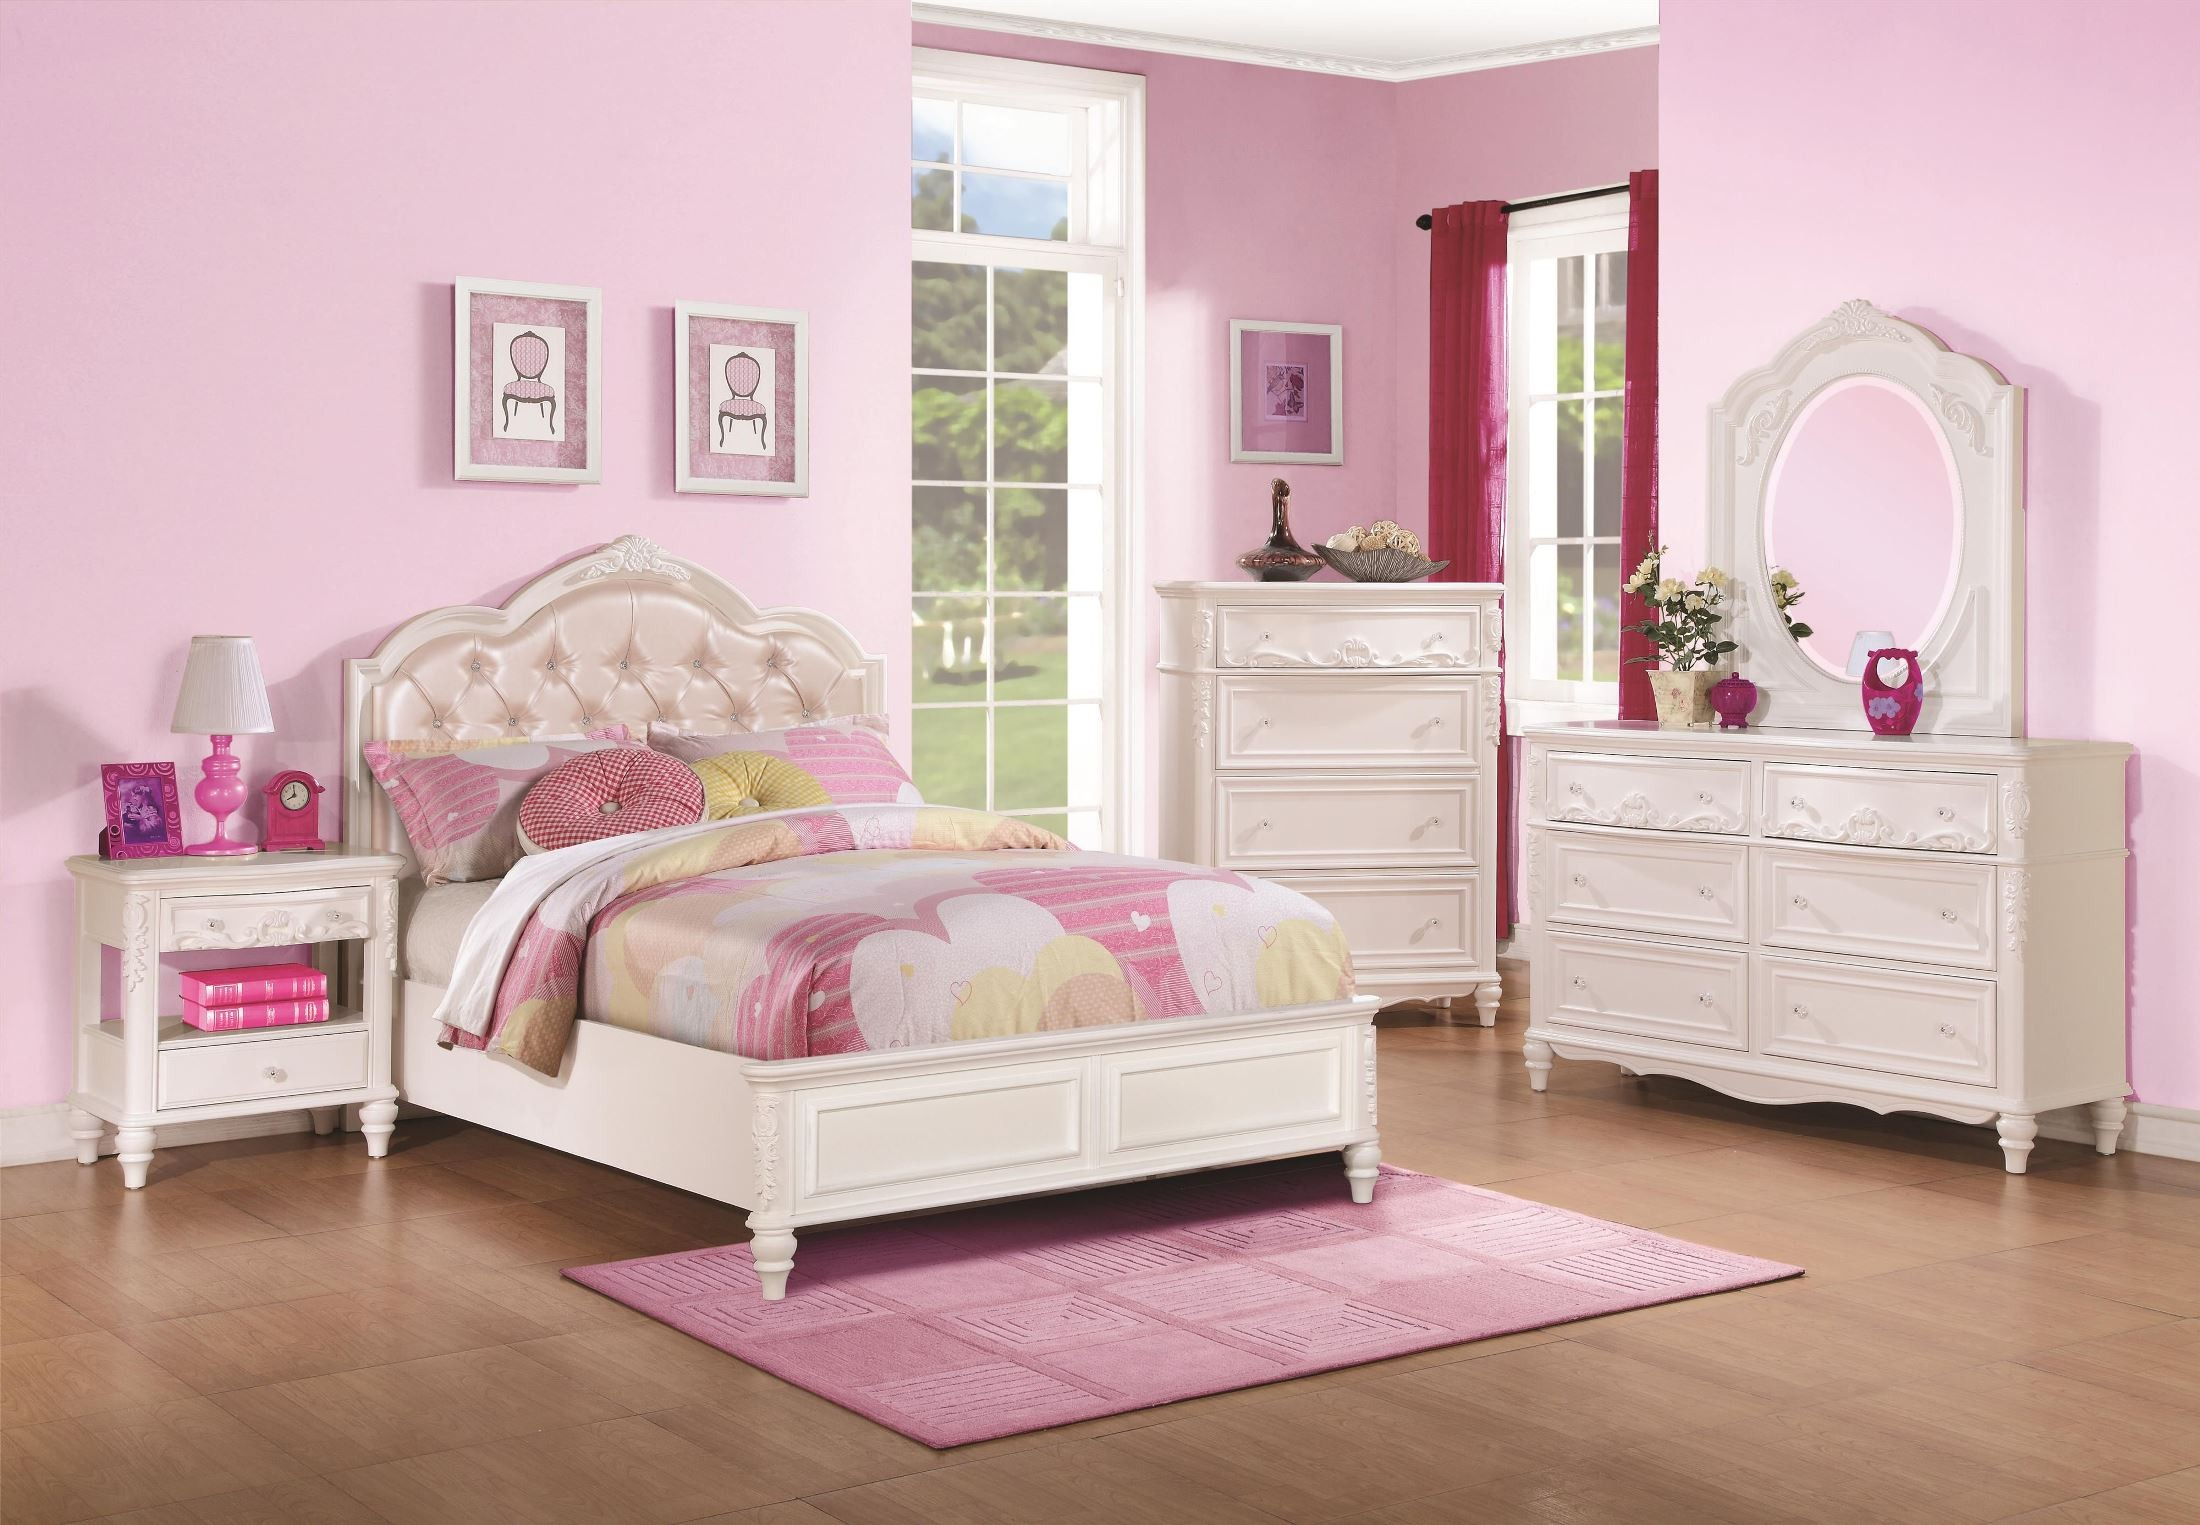 Pink Daybed Girls Room